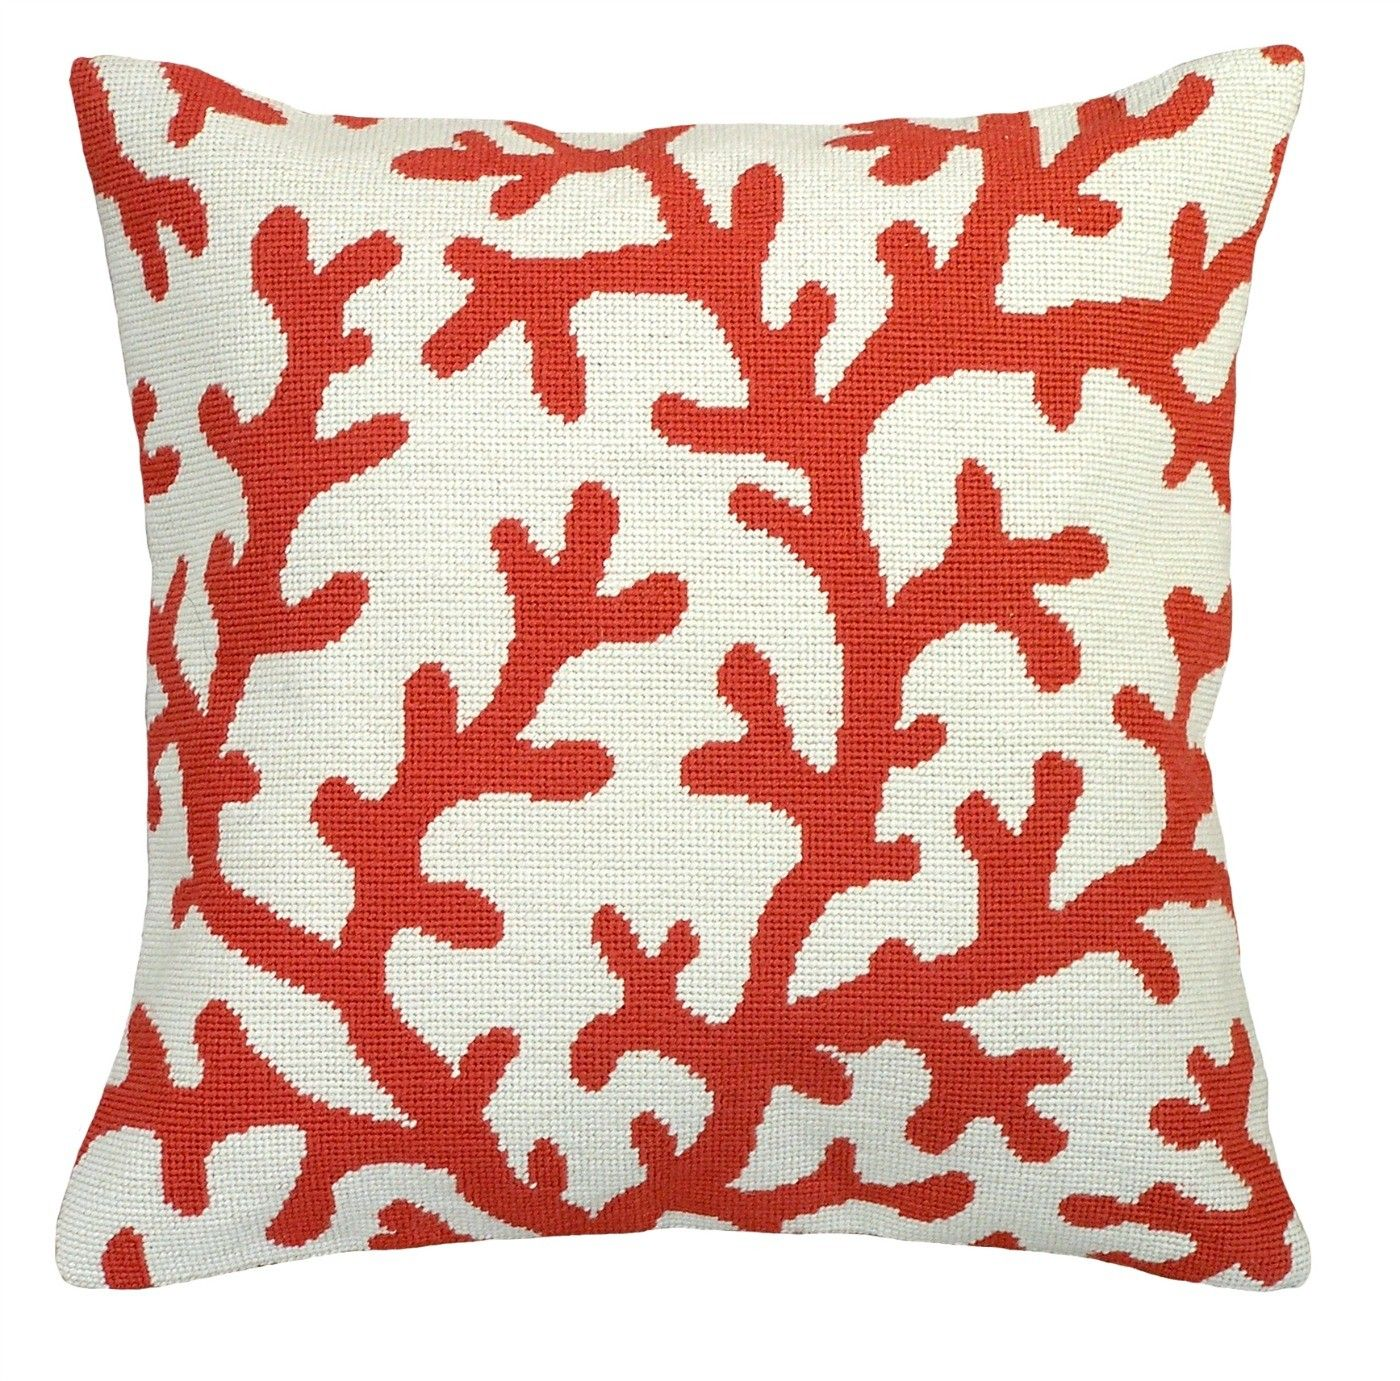 red pillow coral beach ideas house pillows decorating design needlepoint pin